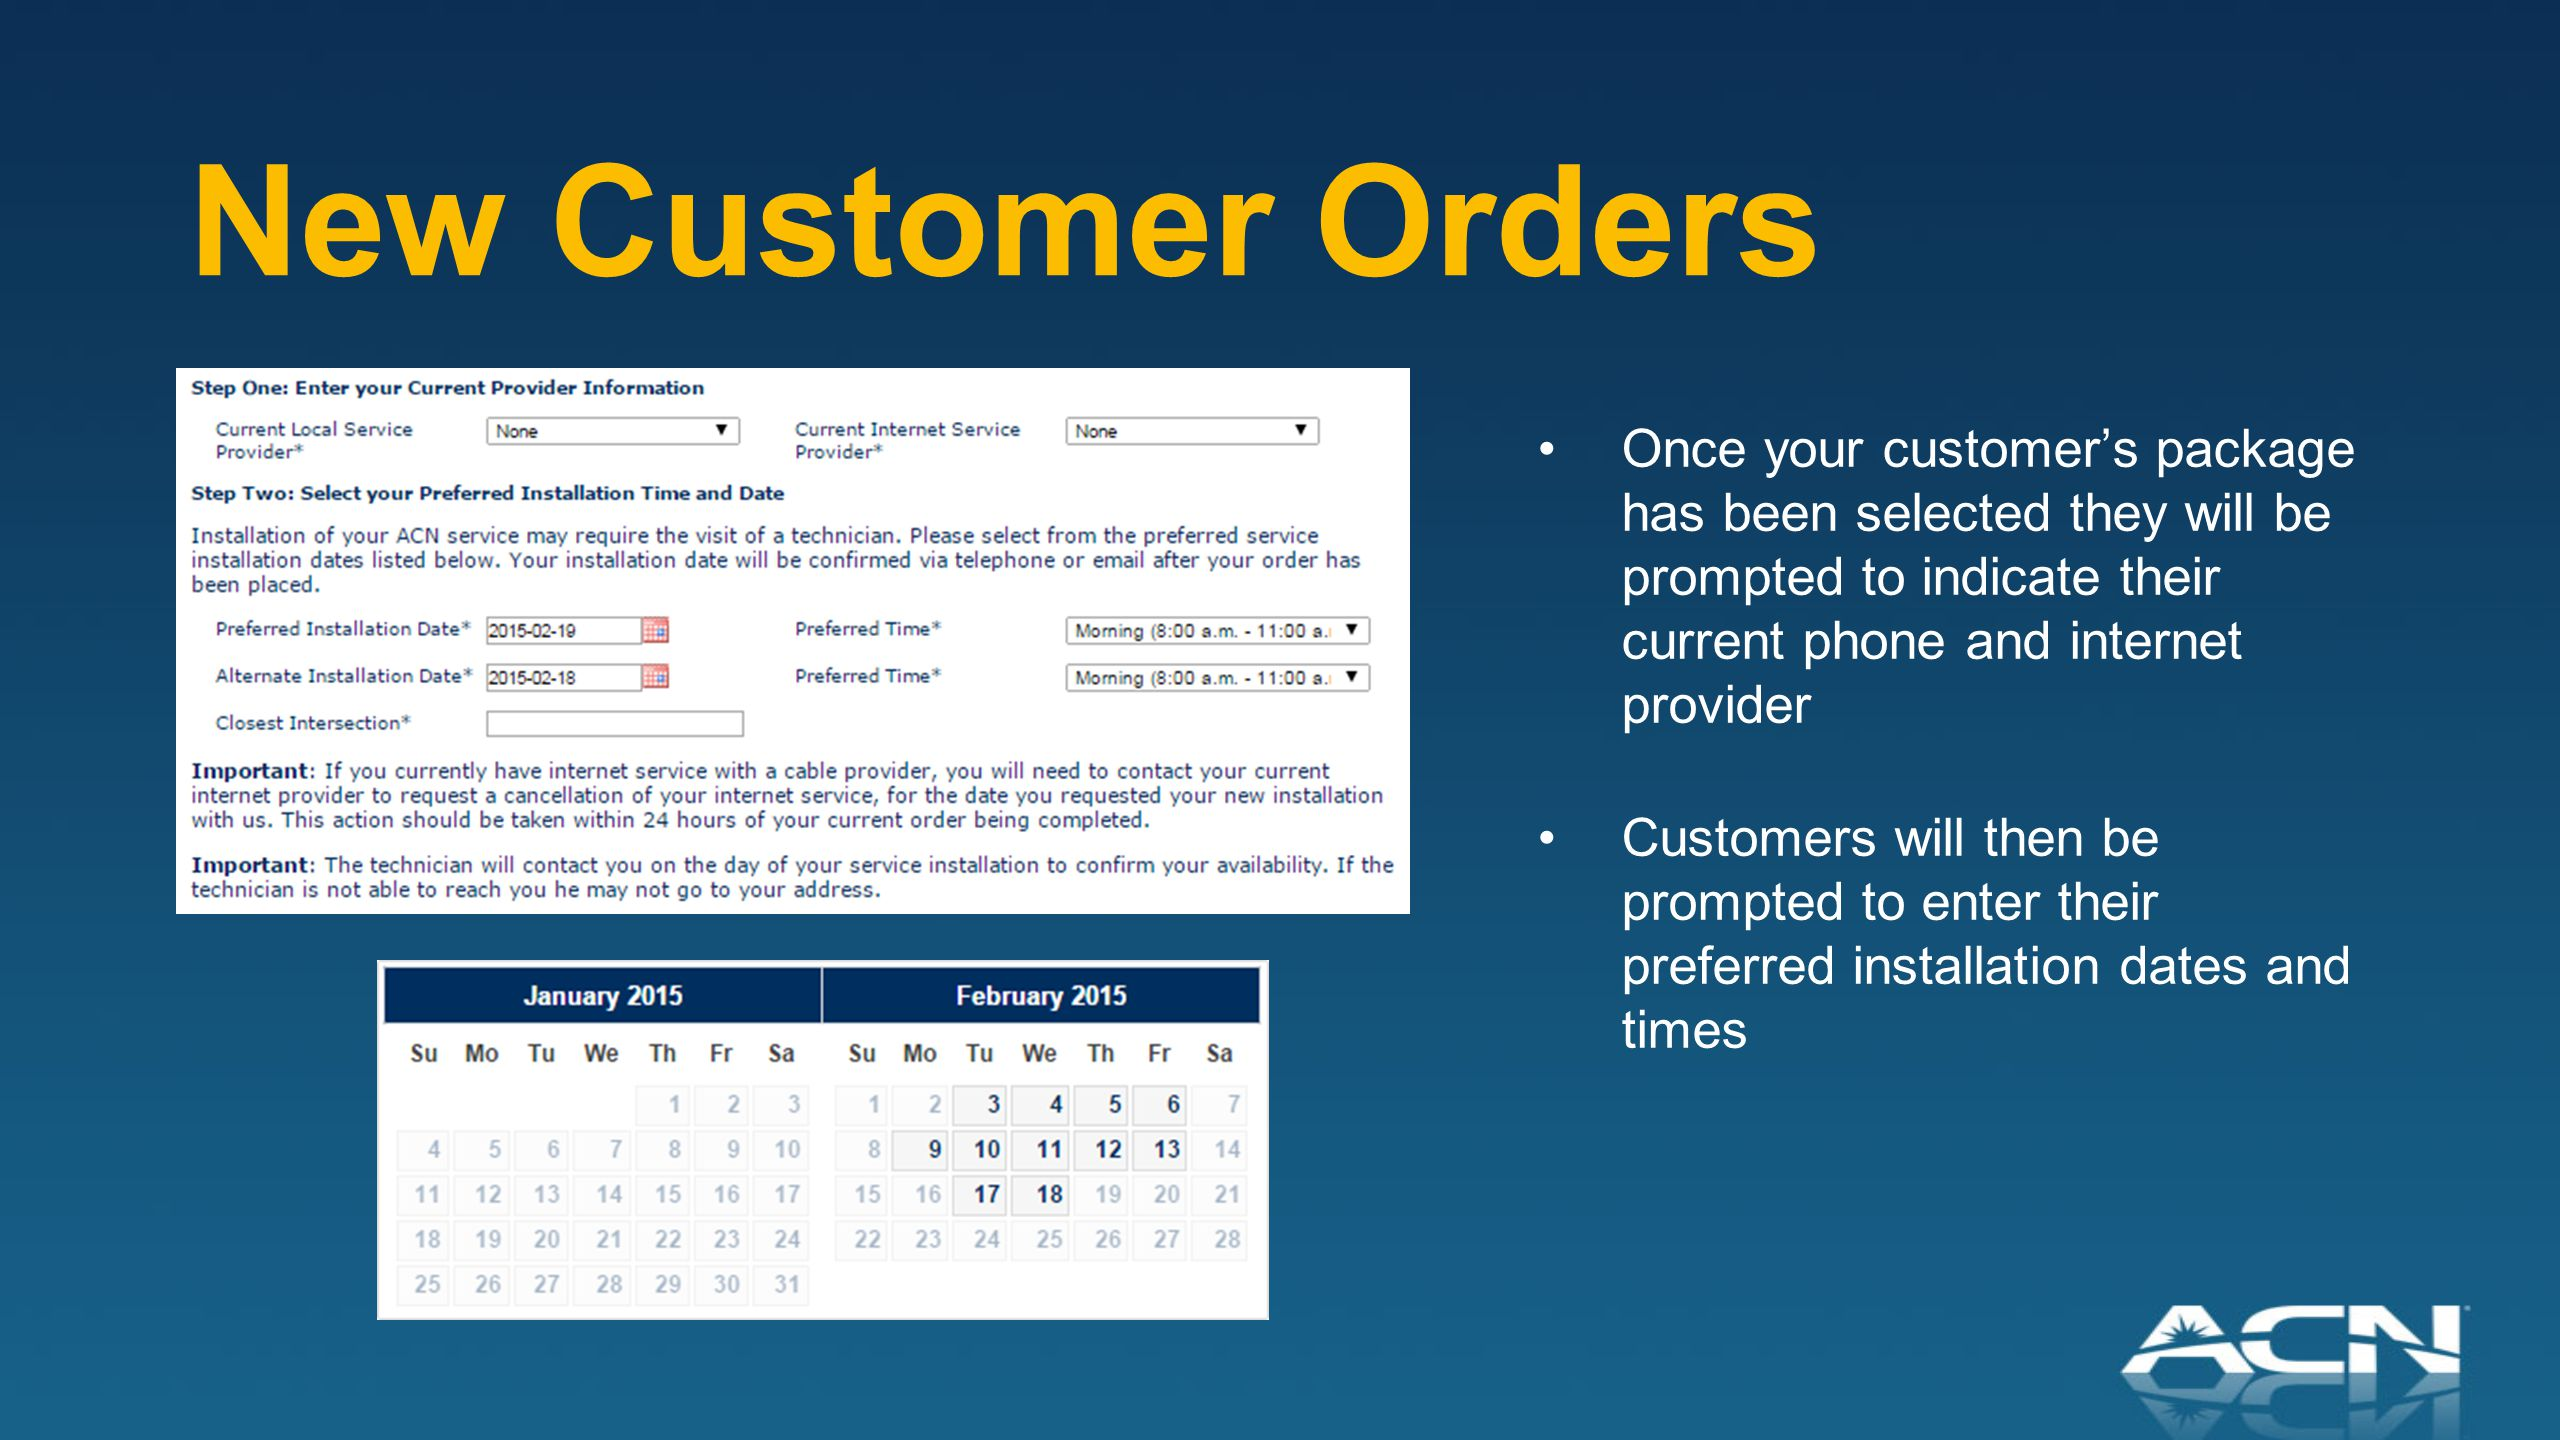 New Customer Orders Once your customer's package has been selected they will be prompted to indicate their current phone and internet provider Customers will then be prompted to enter their preferred installation dates and times